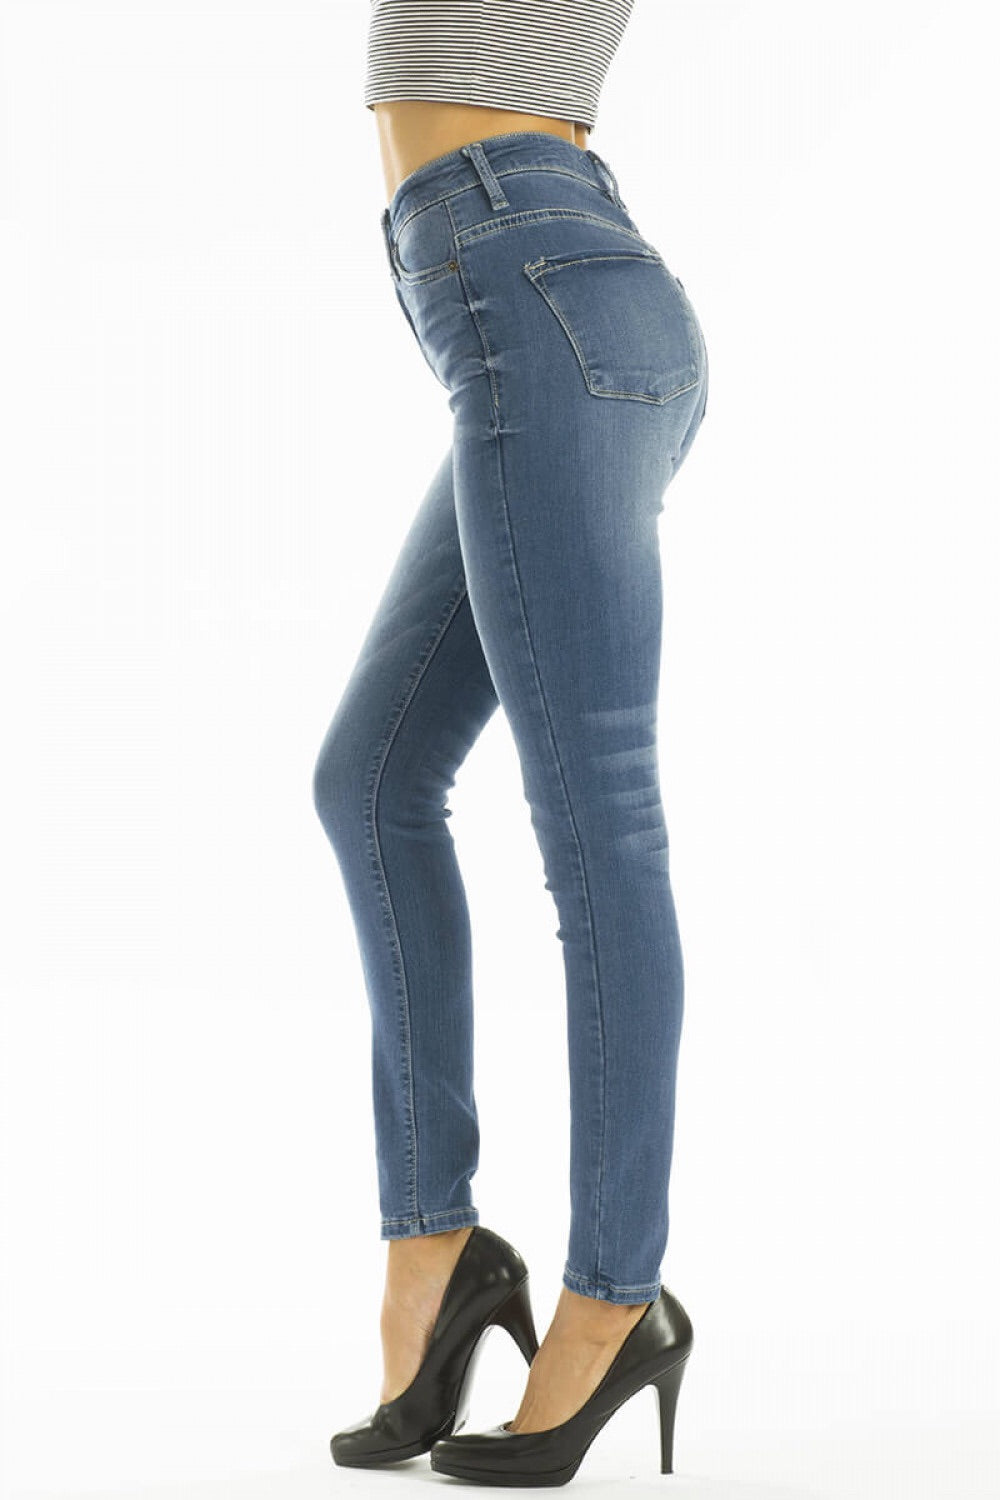 MED WASH HIGH WAIST NONDISTRESSED JEANS - Kancan